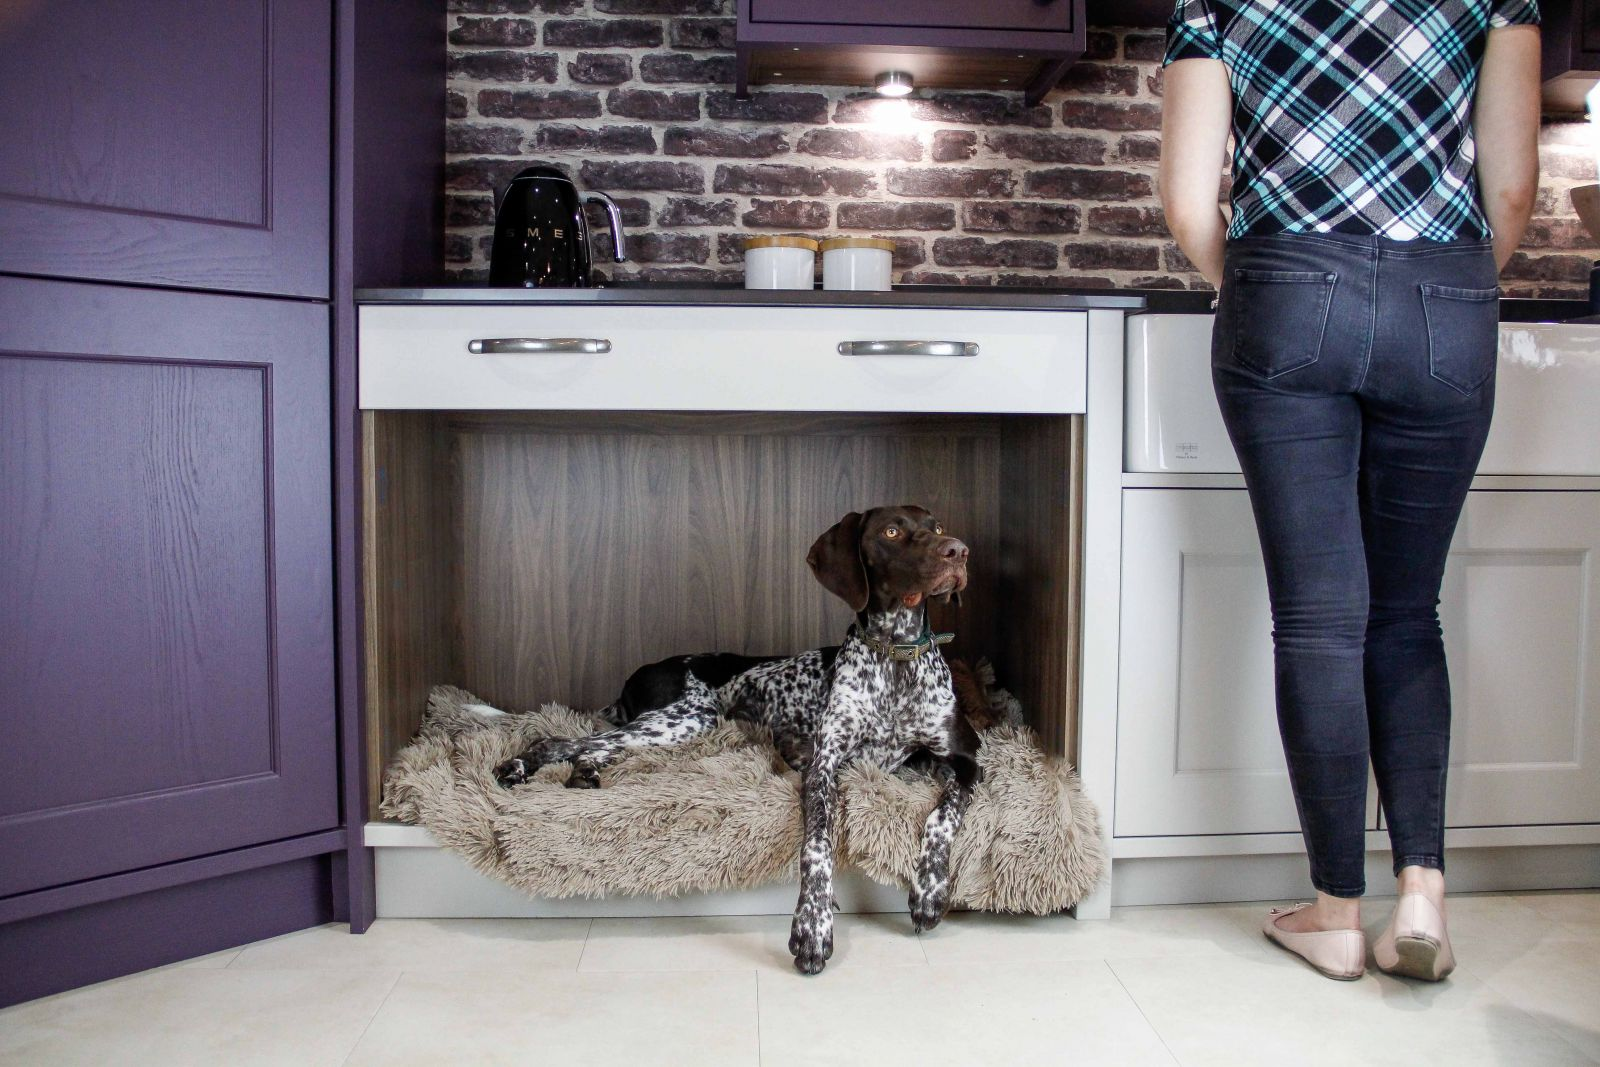 Sigma 3 Kitchens Pet and Dog Friendly Kitchen Design, Dog Bed Area